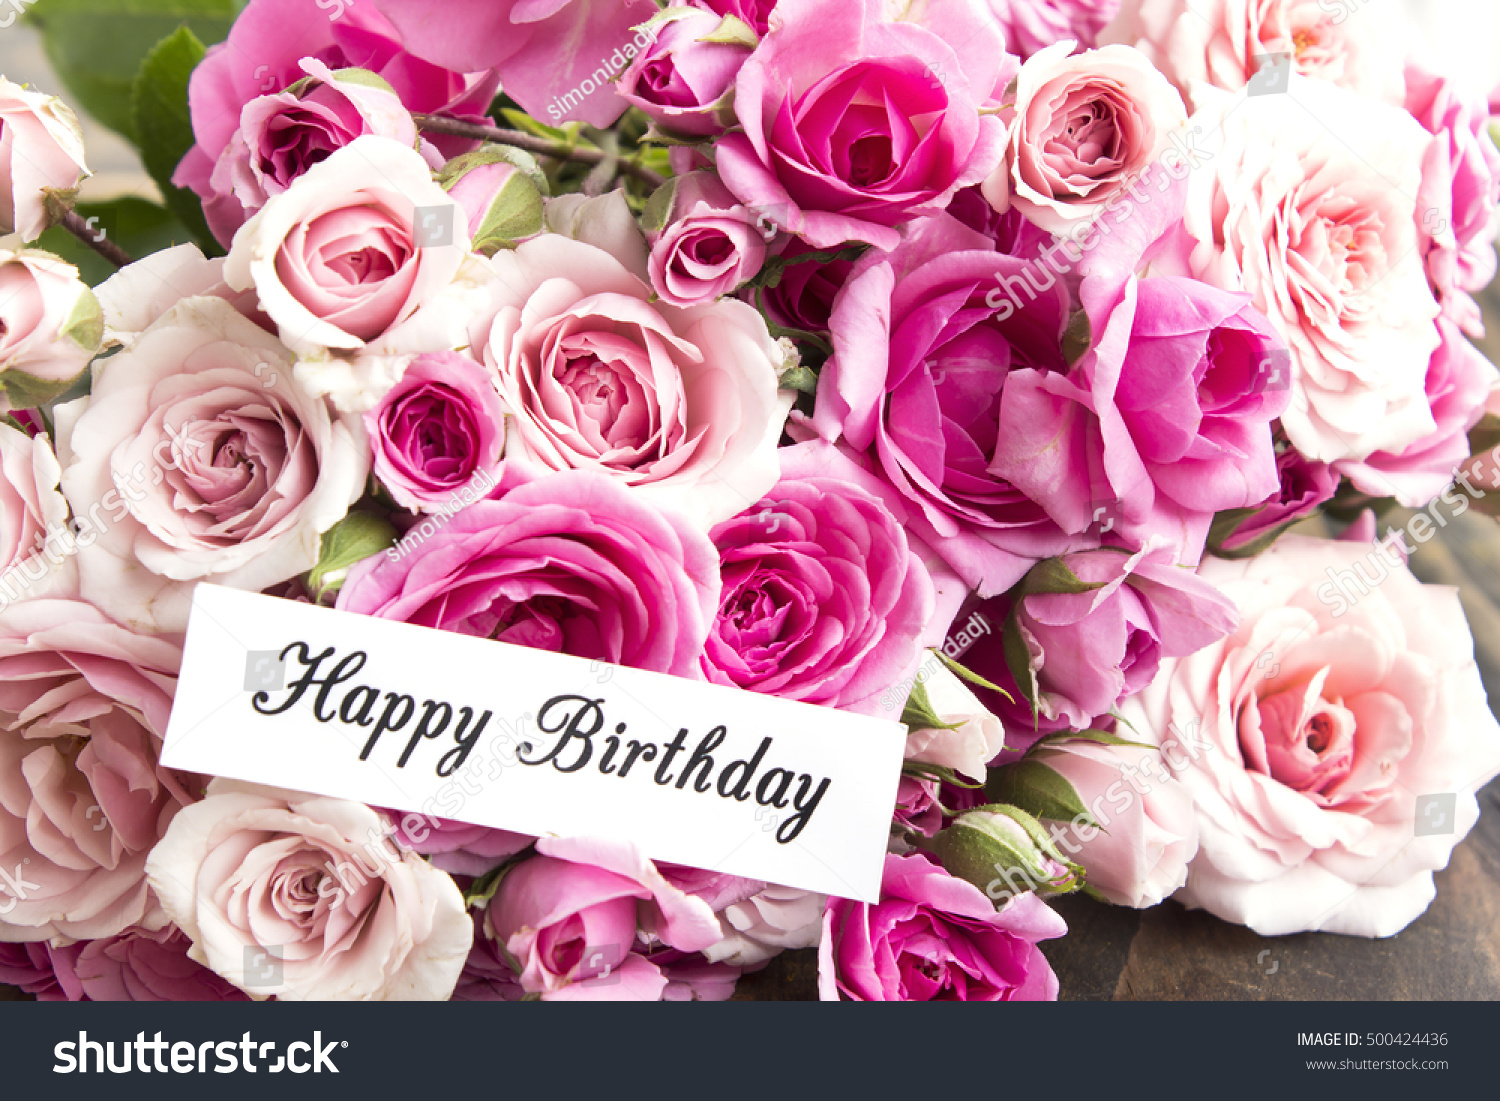 Happy birthday card bouquet pink roses stock photo edit now happy birthday card with bouquet of pink roses izmirmasajfo